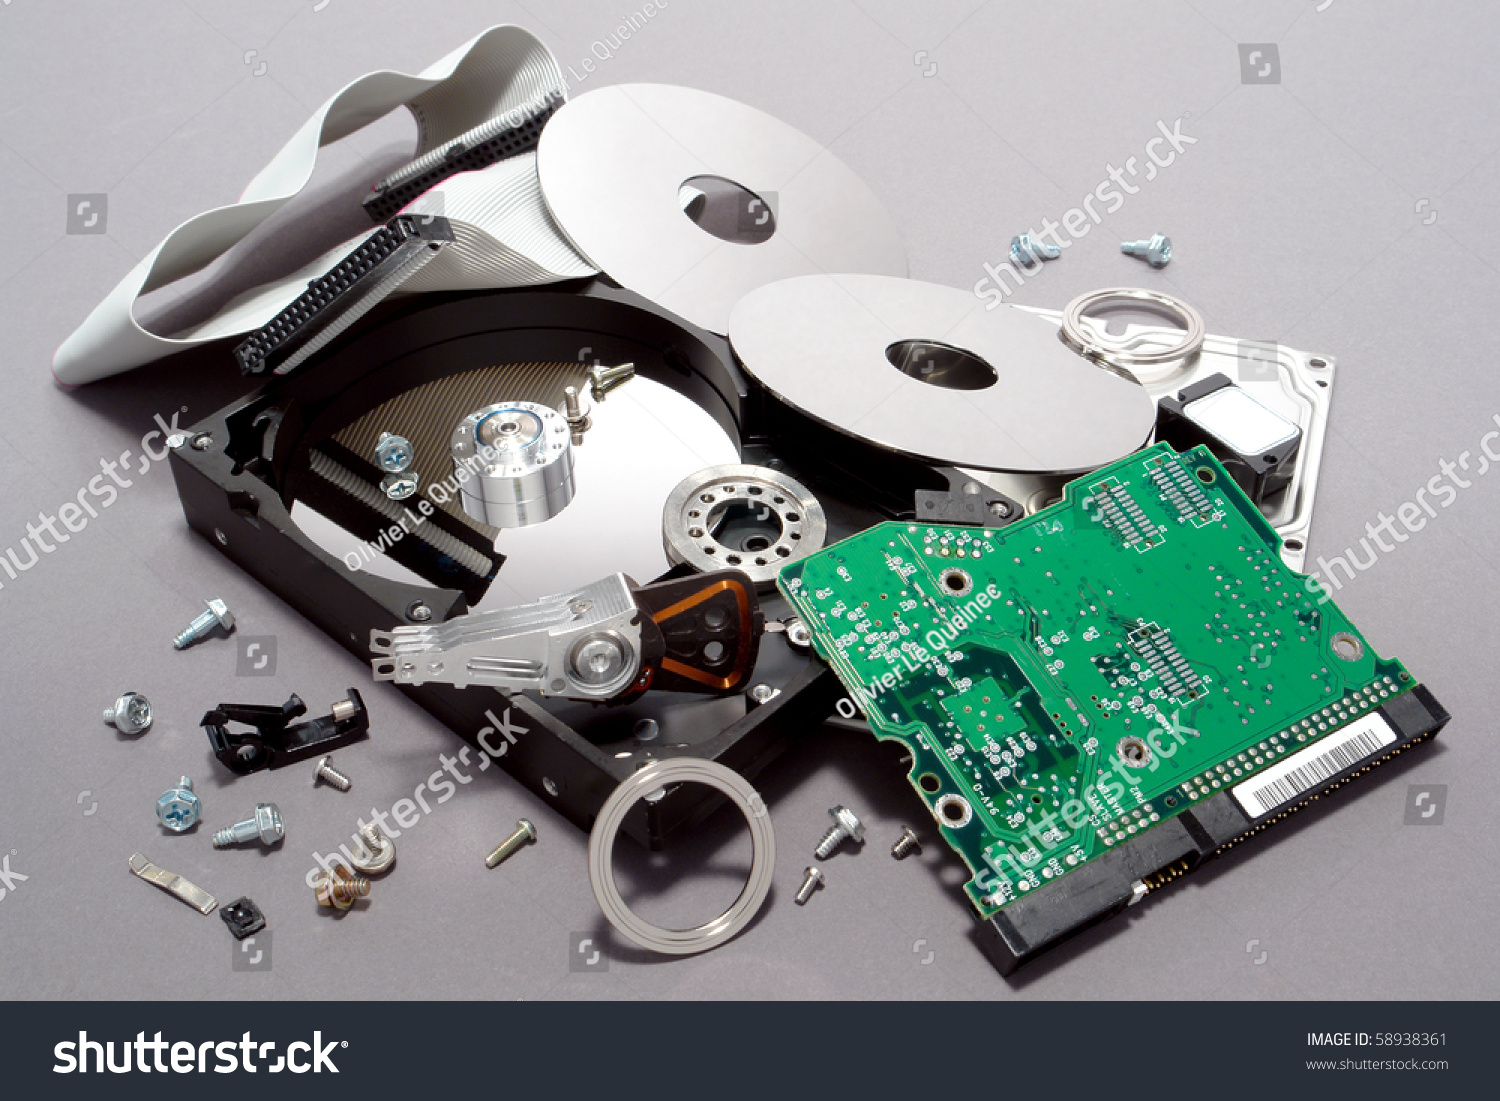 Crashed Broken Apart Dismantled Computer Hard Stock Photo Edit Now Circuitry Of An Electronic Calculator Royalty Free Photography And Drive With Scattered Component Parts Showing Loose Disks